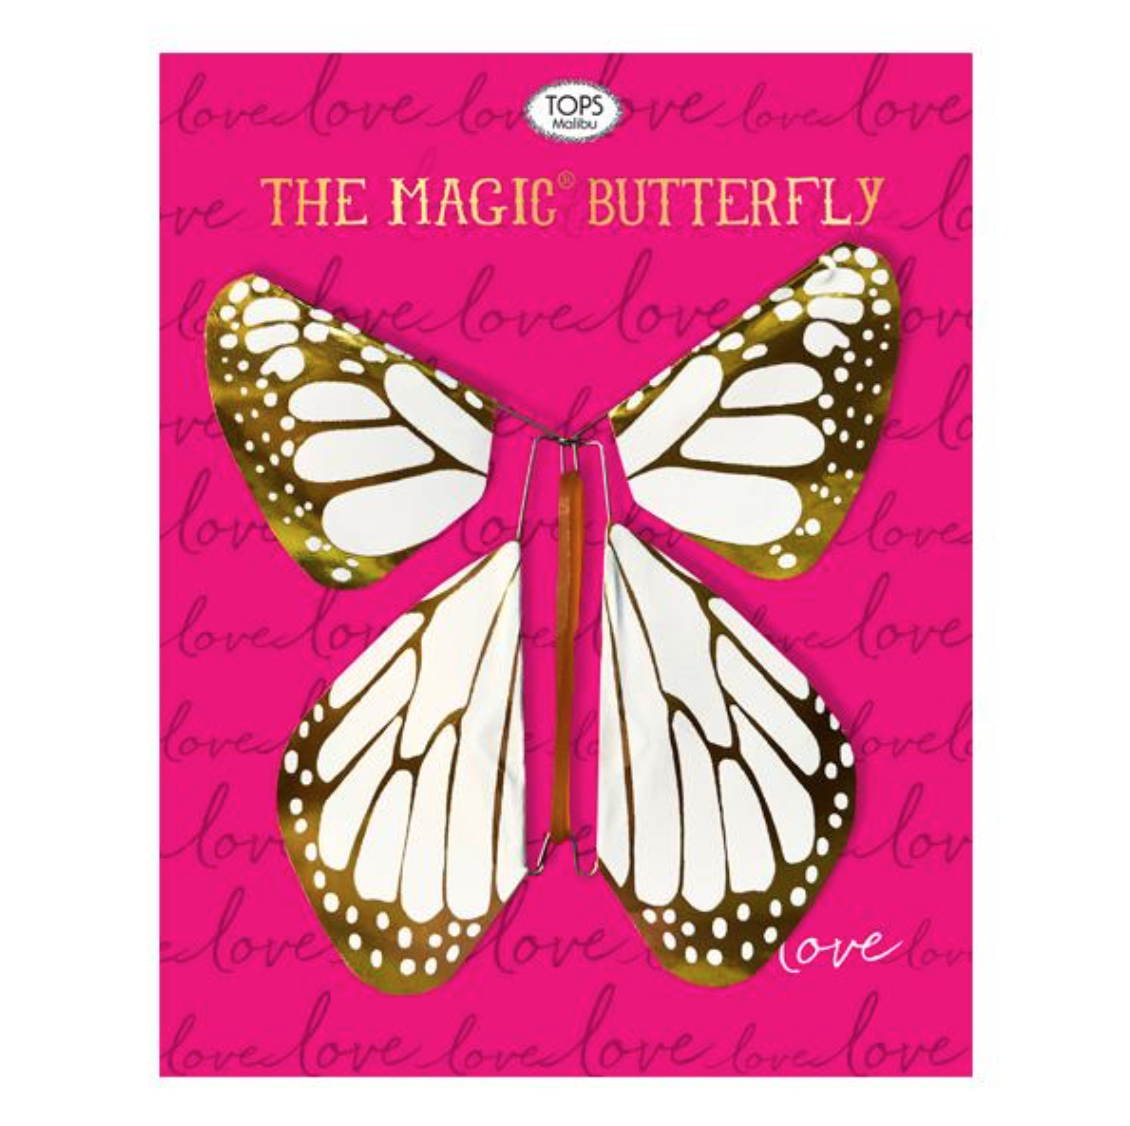 Tops Malibu Love - Metallic Flying Magic Butterfly